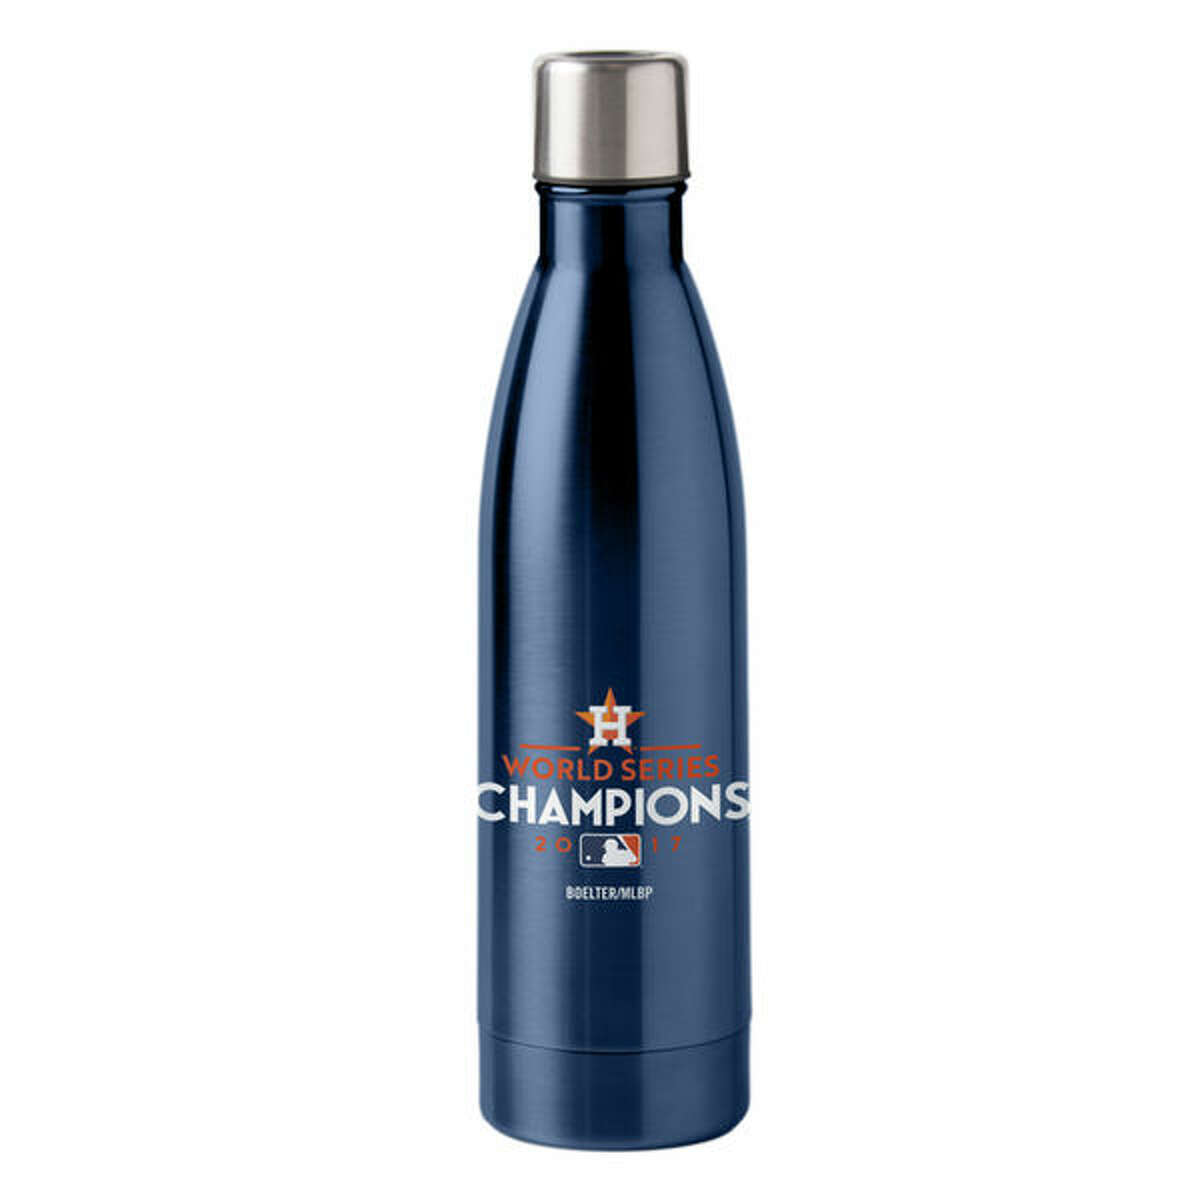 Houston Astros 2017 World Series Champions 18 oz. Colored Travel Bottle: This insulated drinking bottle is great for taking water to the gym, coffee to work or champagne to the locker room for the next victory celebration. (See price & more details)